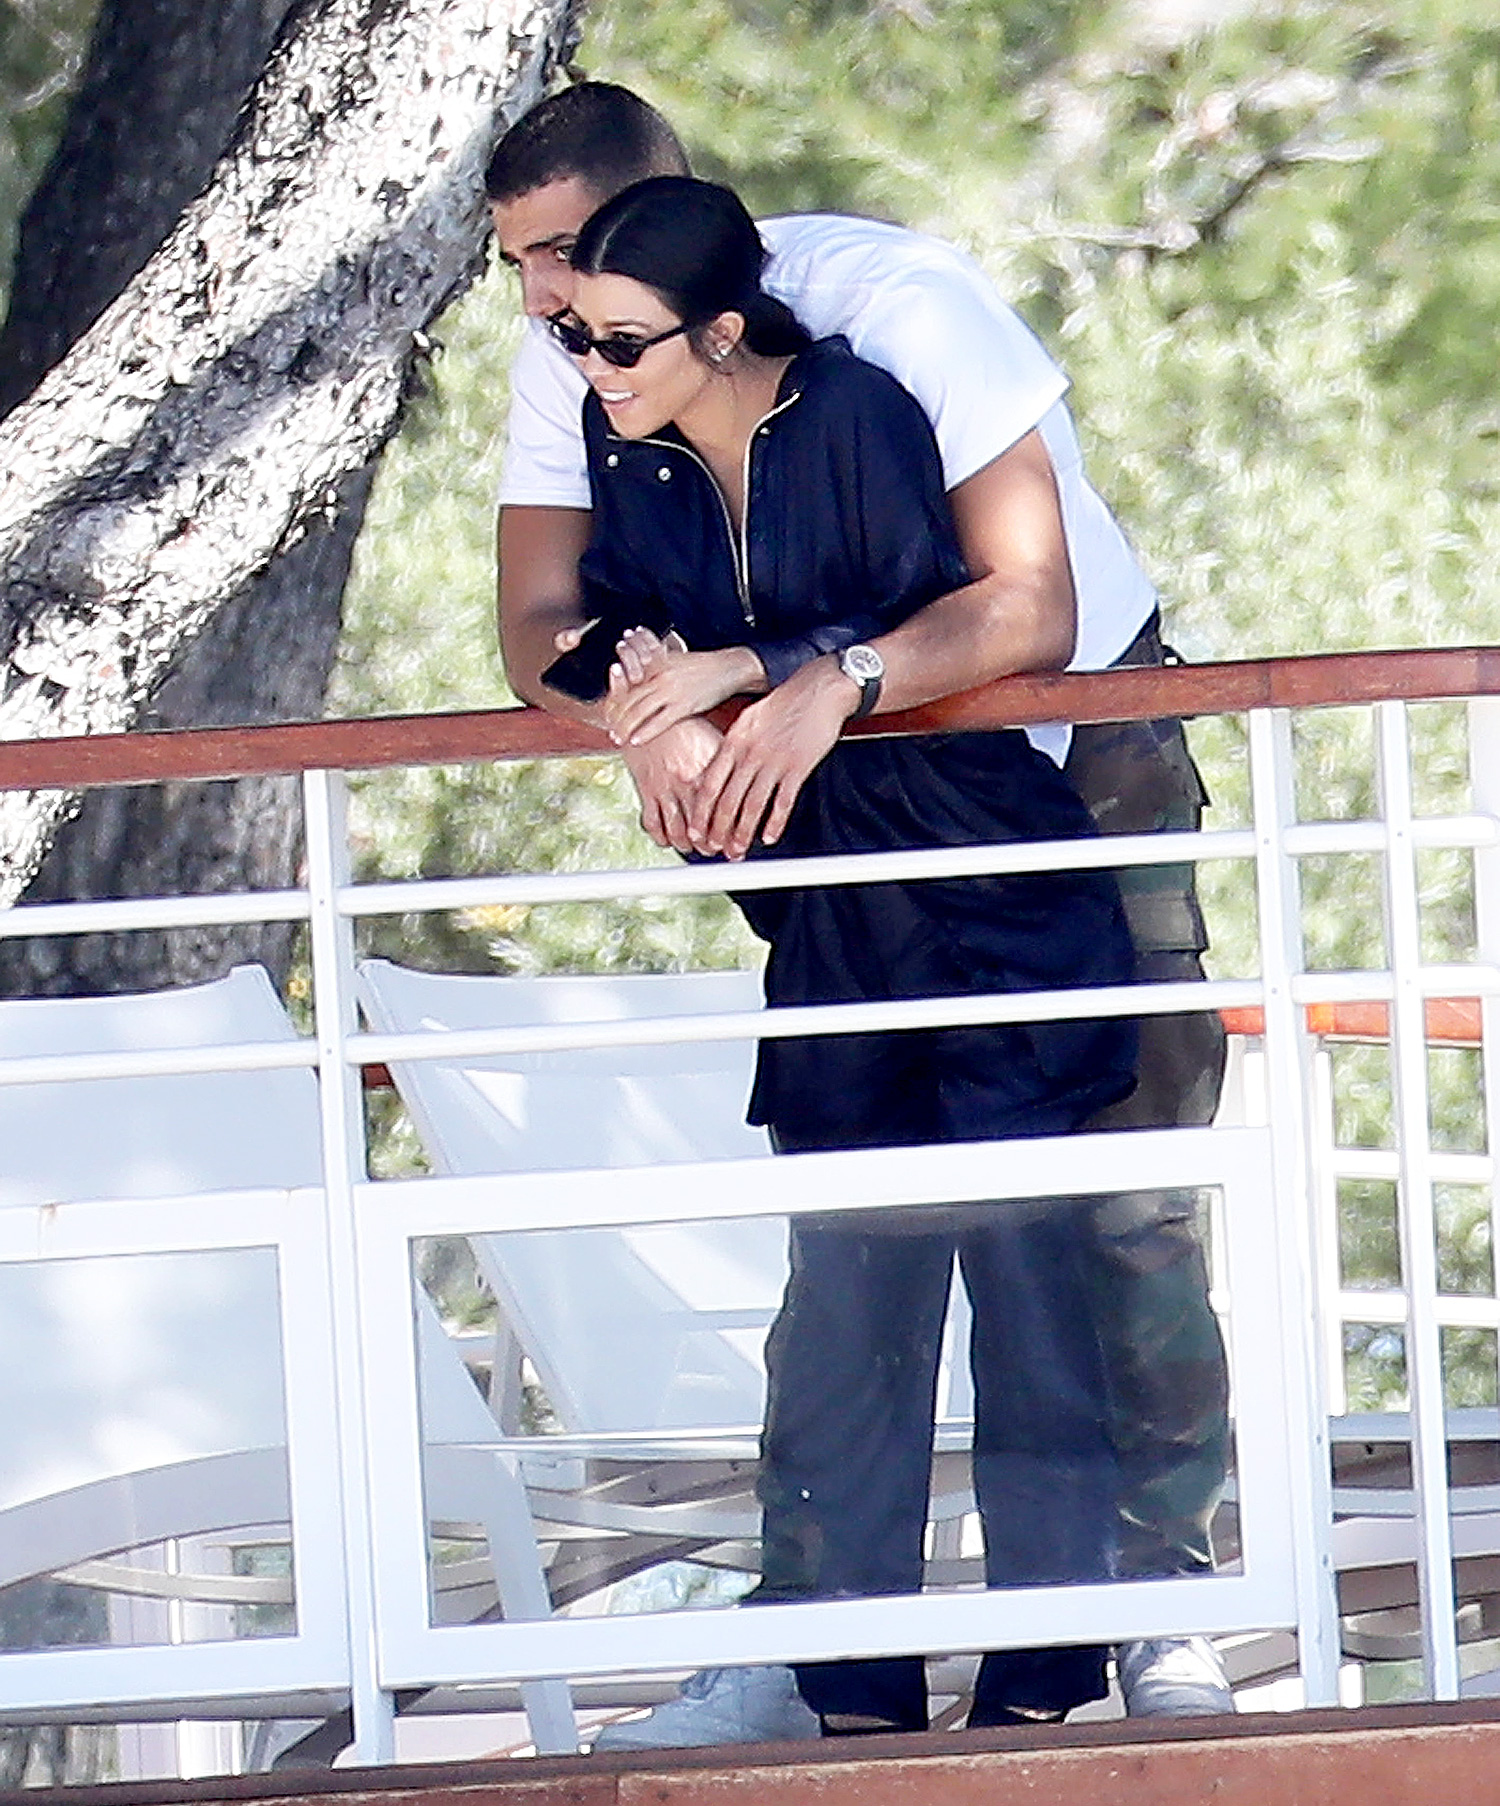 Kourtney Kardashian and Younes Bendjima in love at the Eden Roc during the 70th Cannes Festival